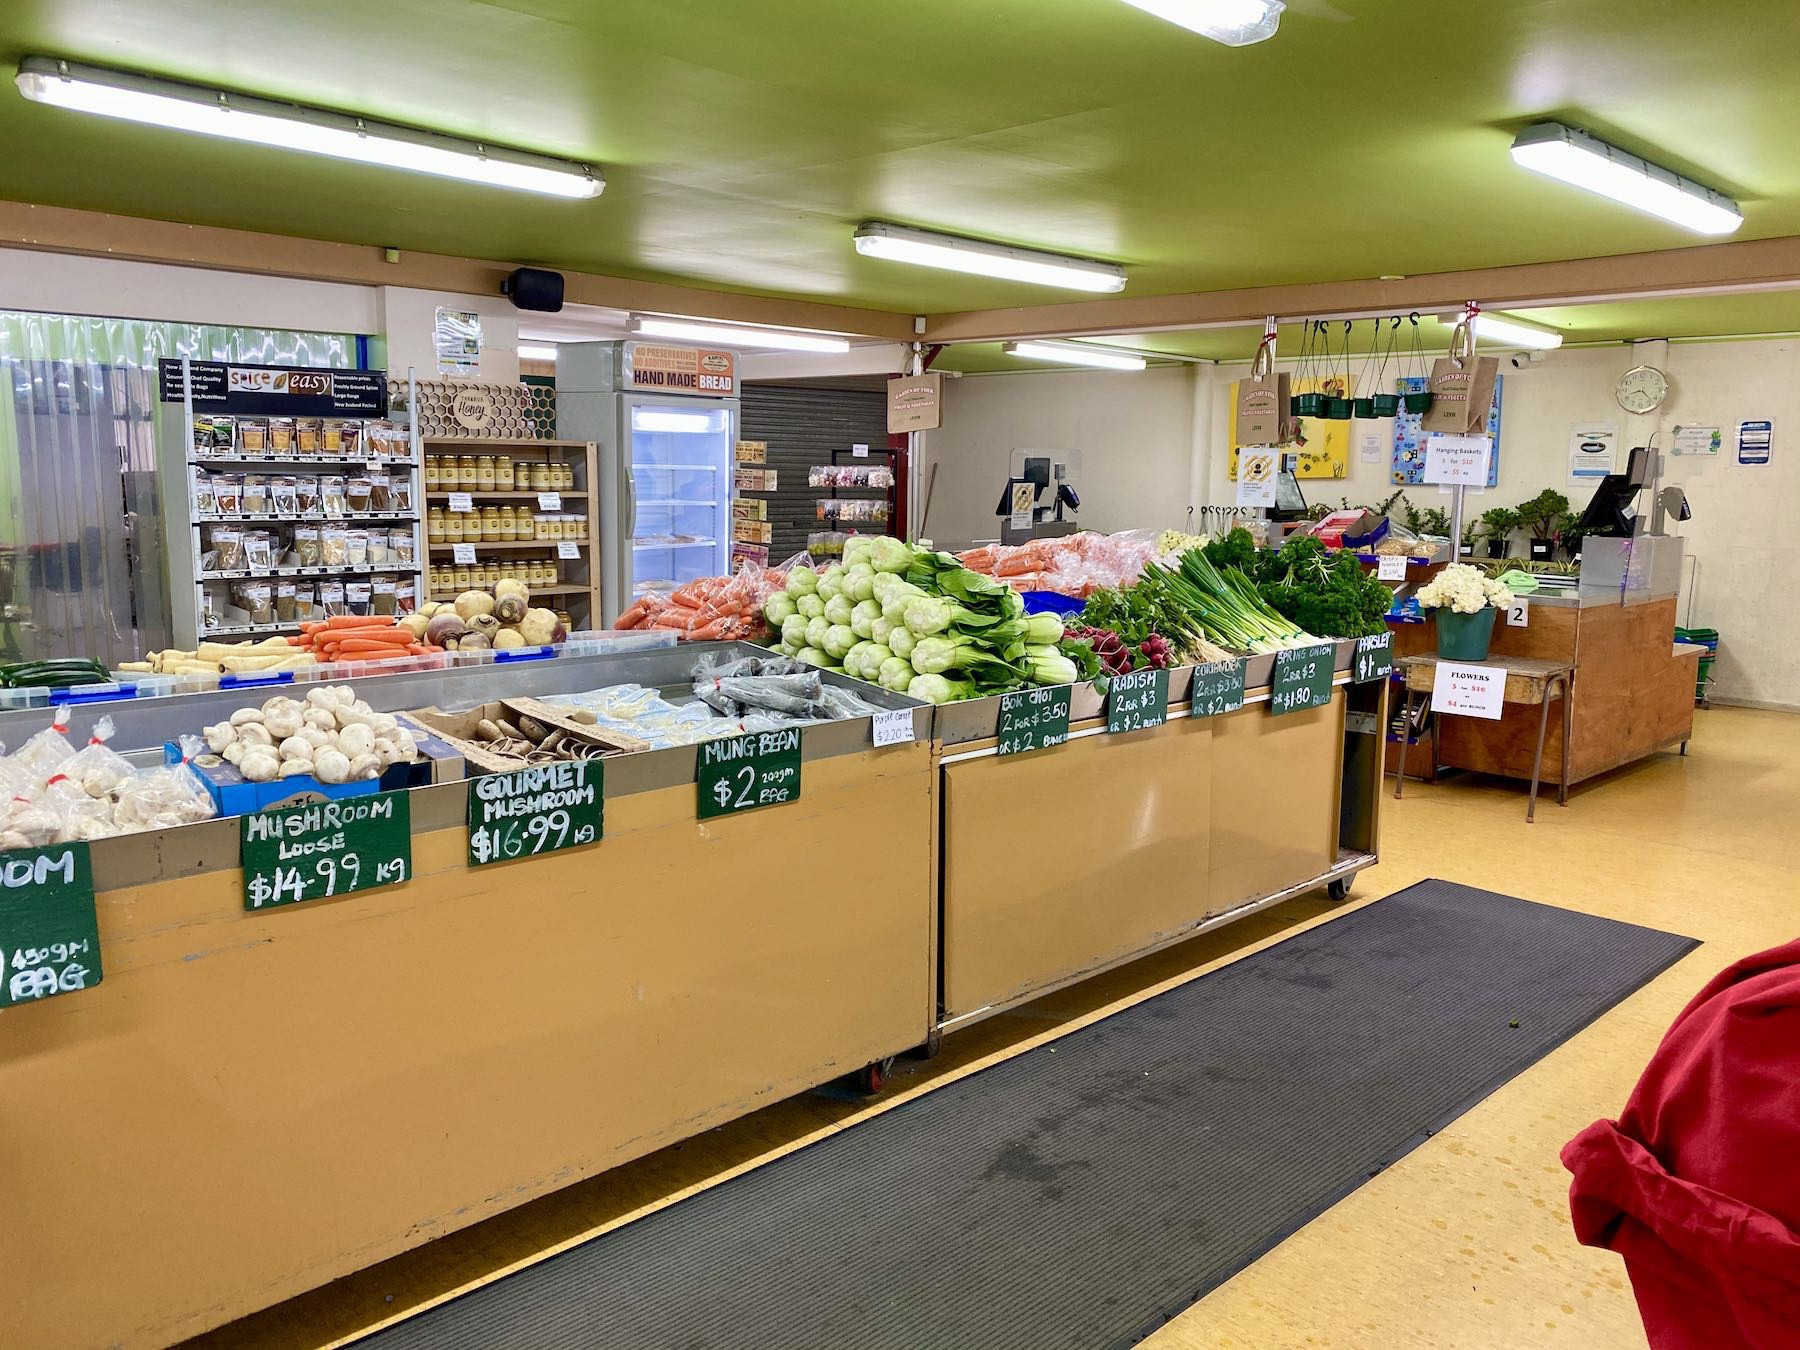 More vegetables and the till area.